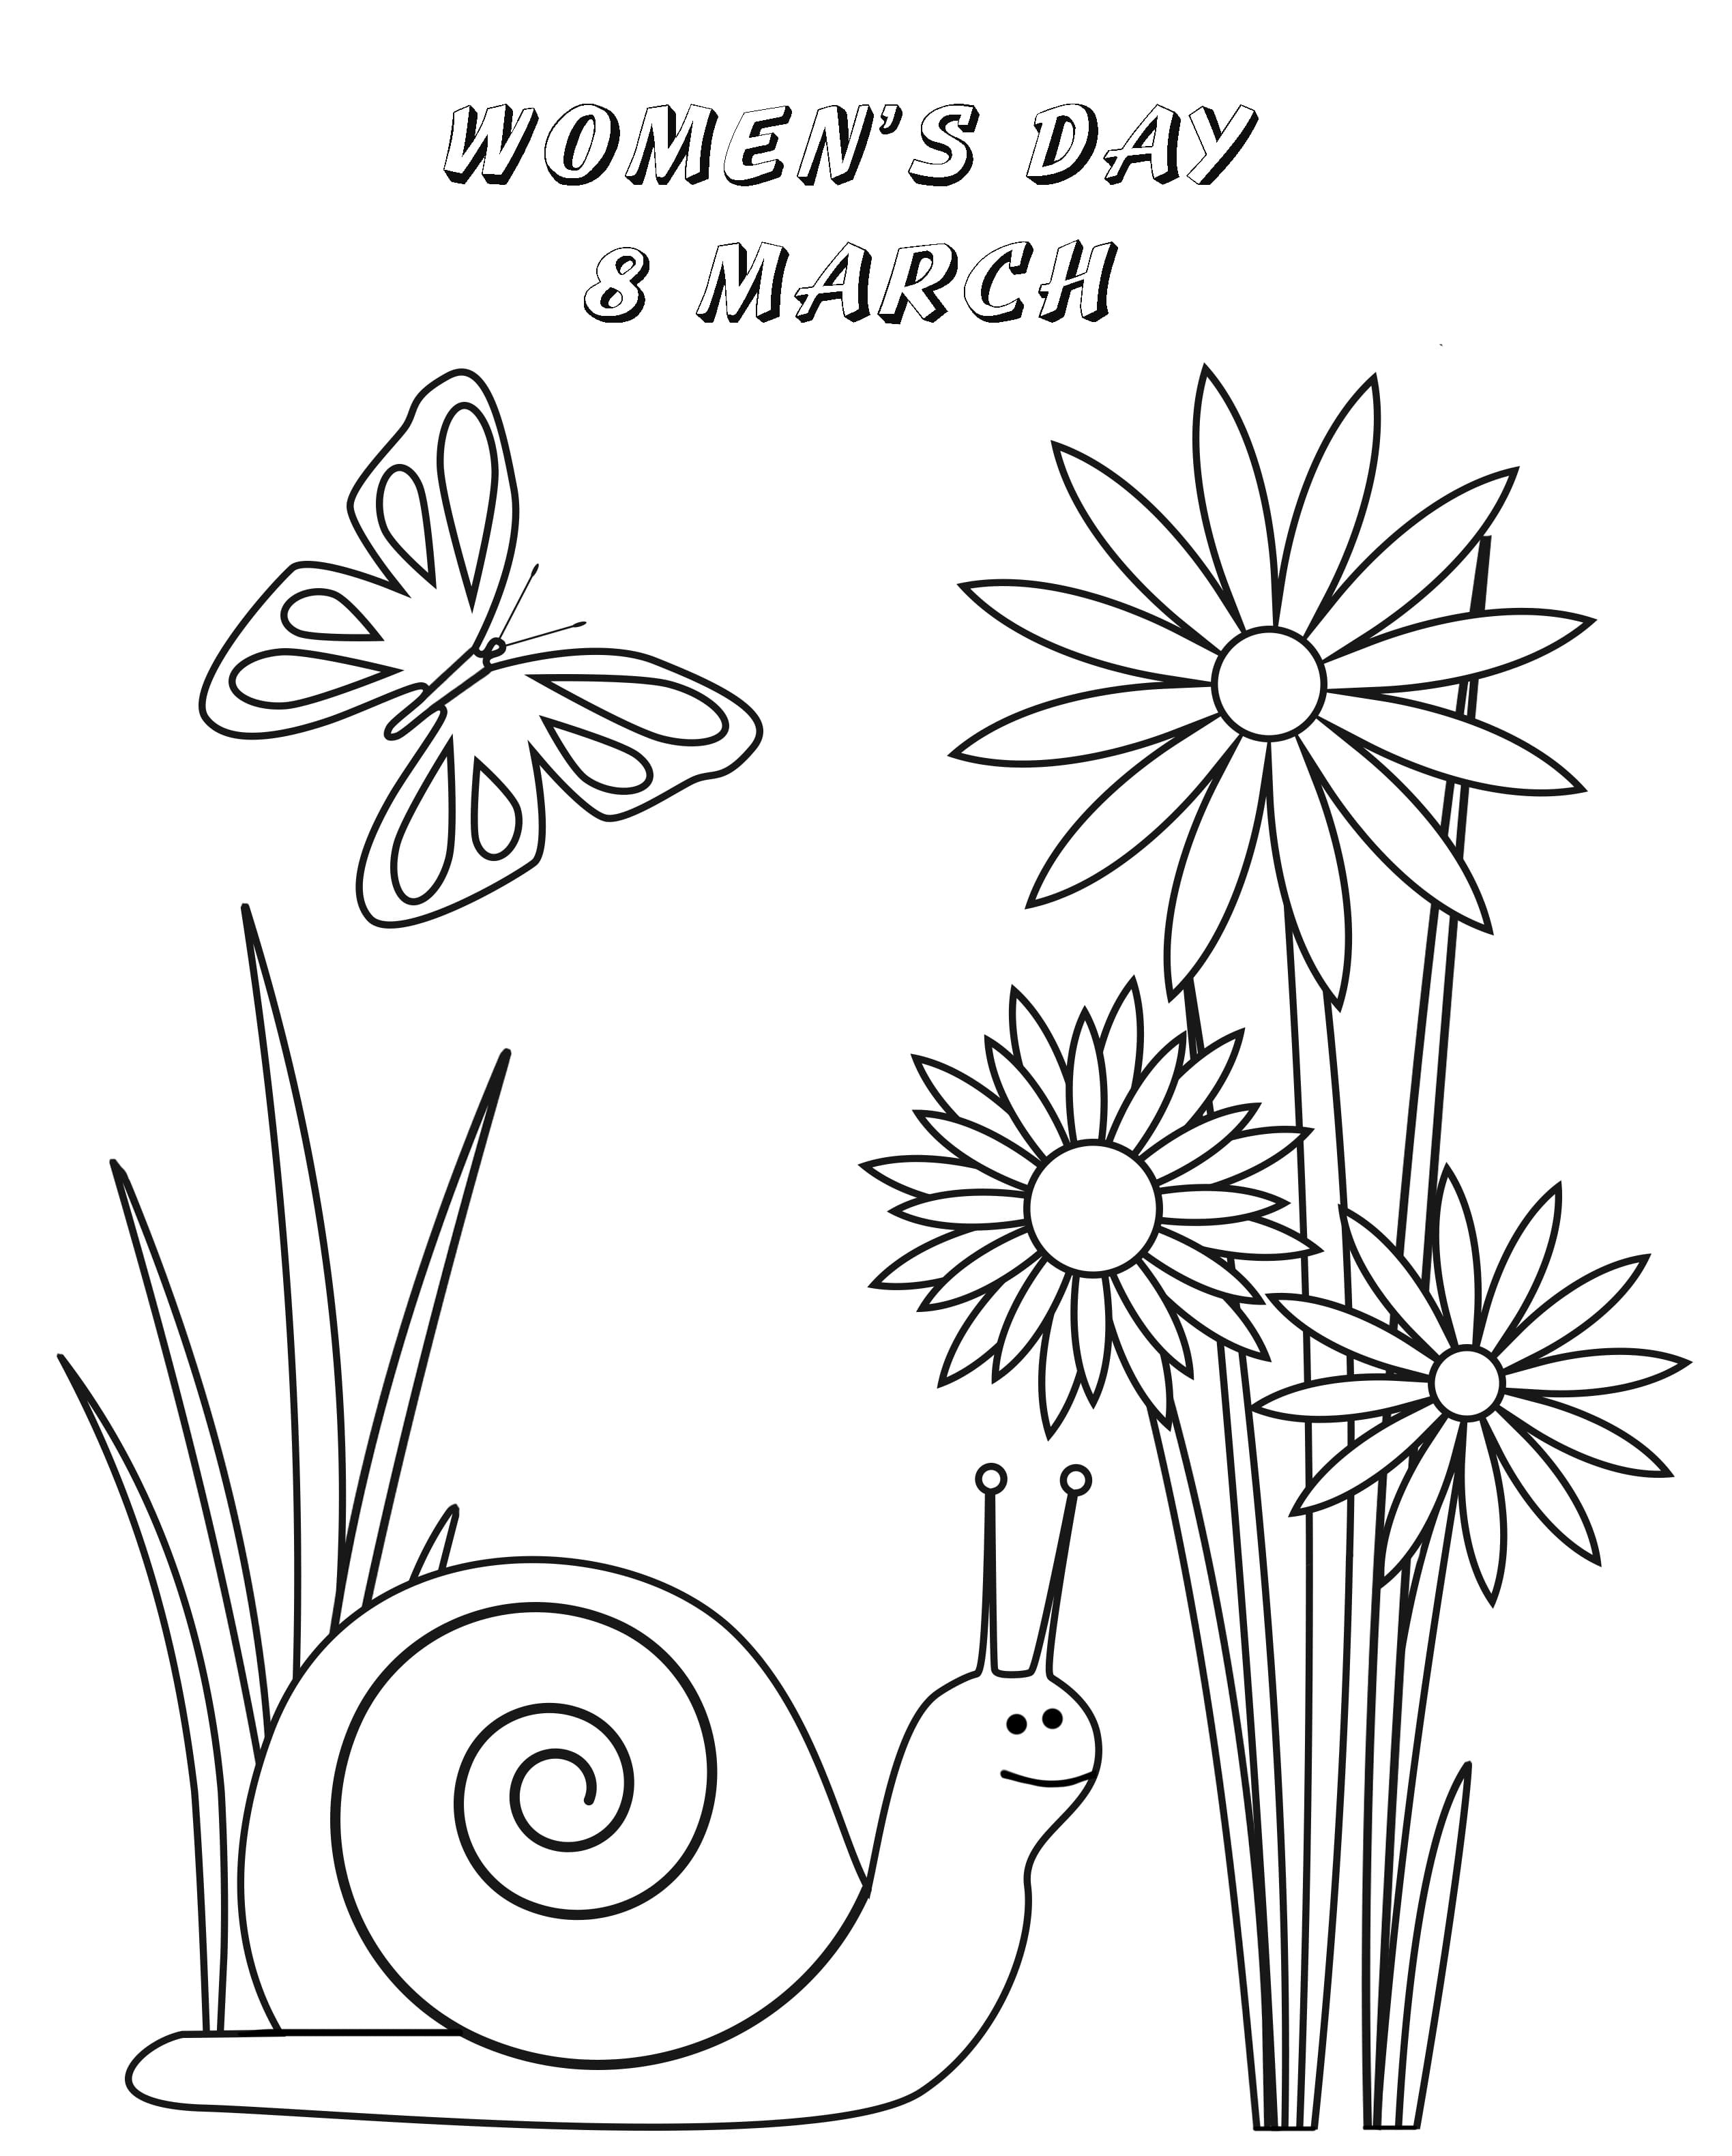 Happy Womens Day and Snail Coloring Page